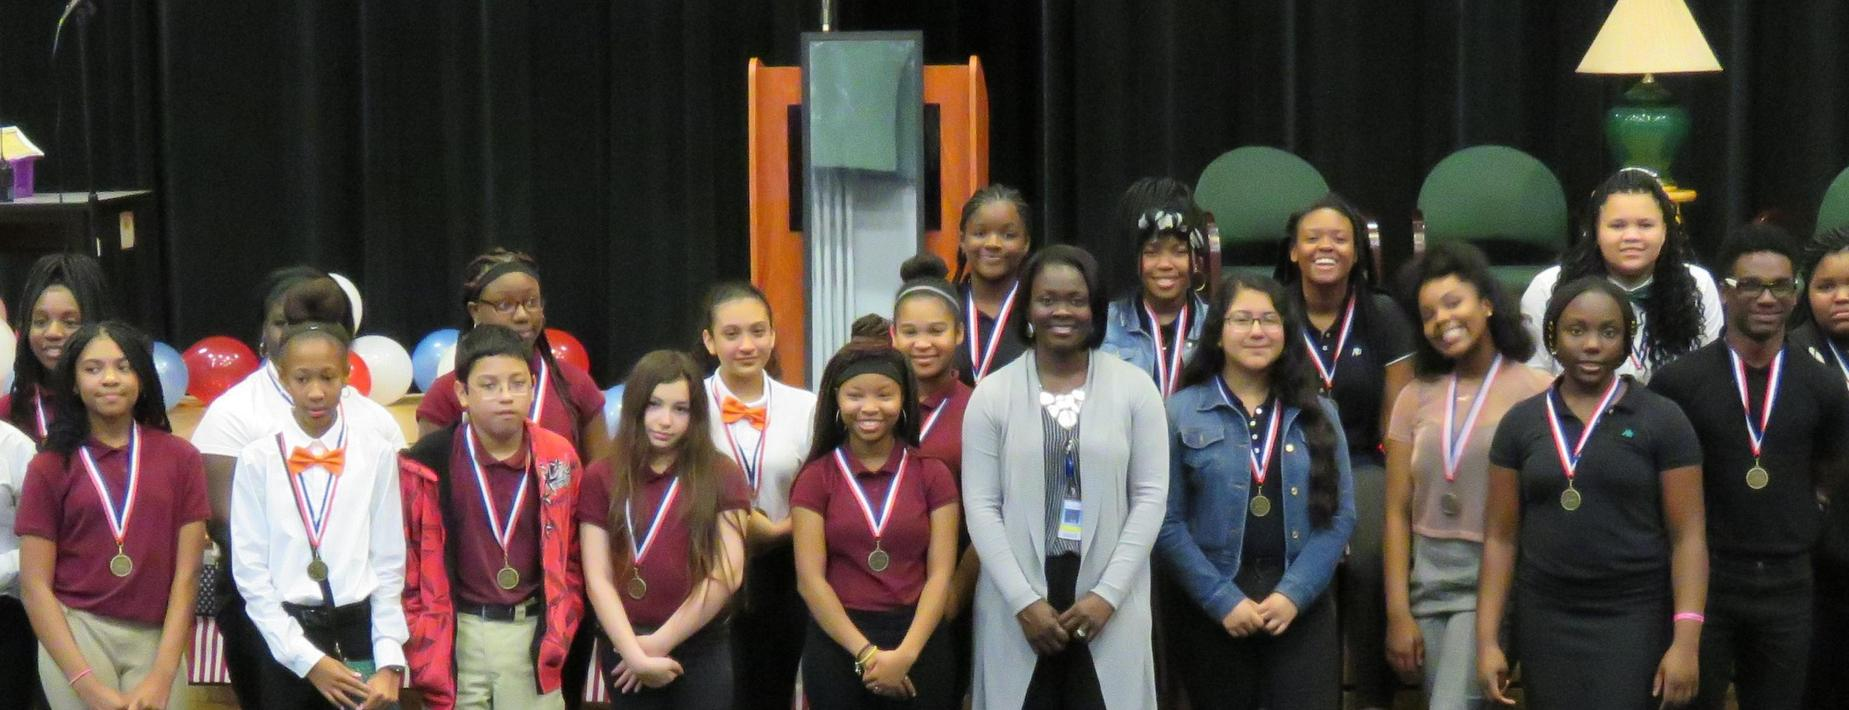 HRMS students and Superintendent Anderson at Awards Program